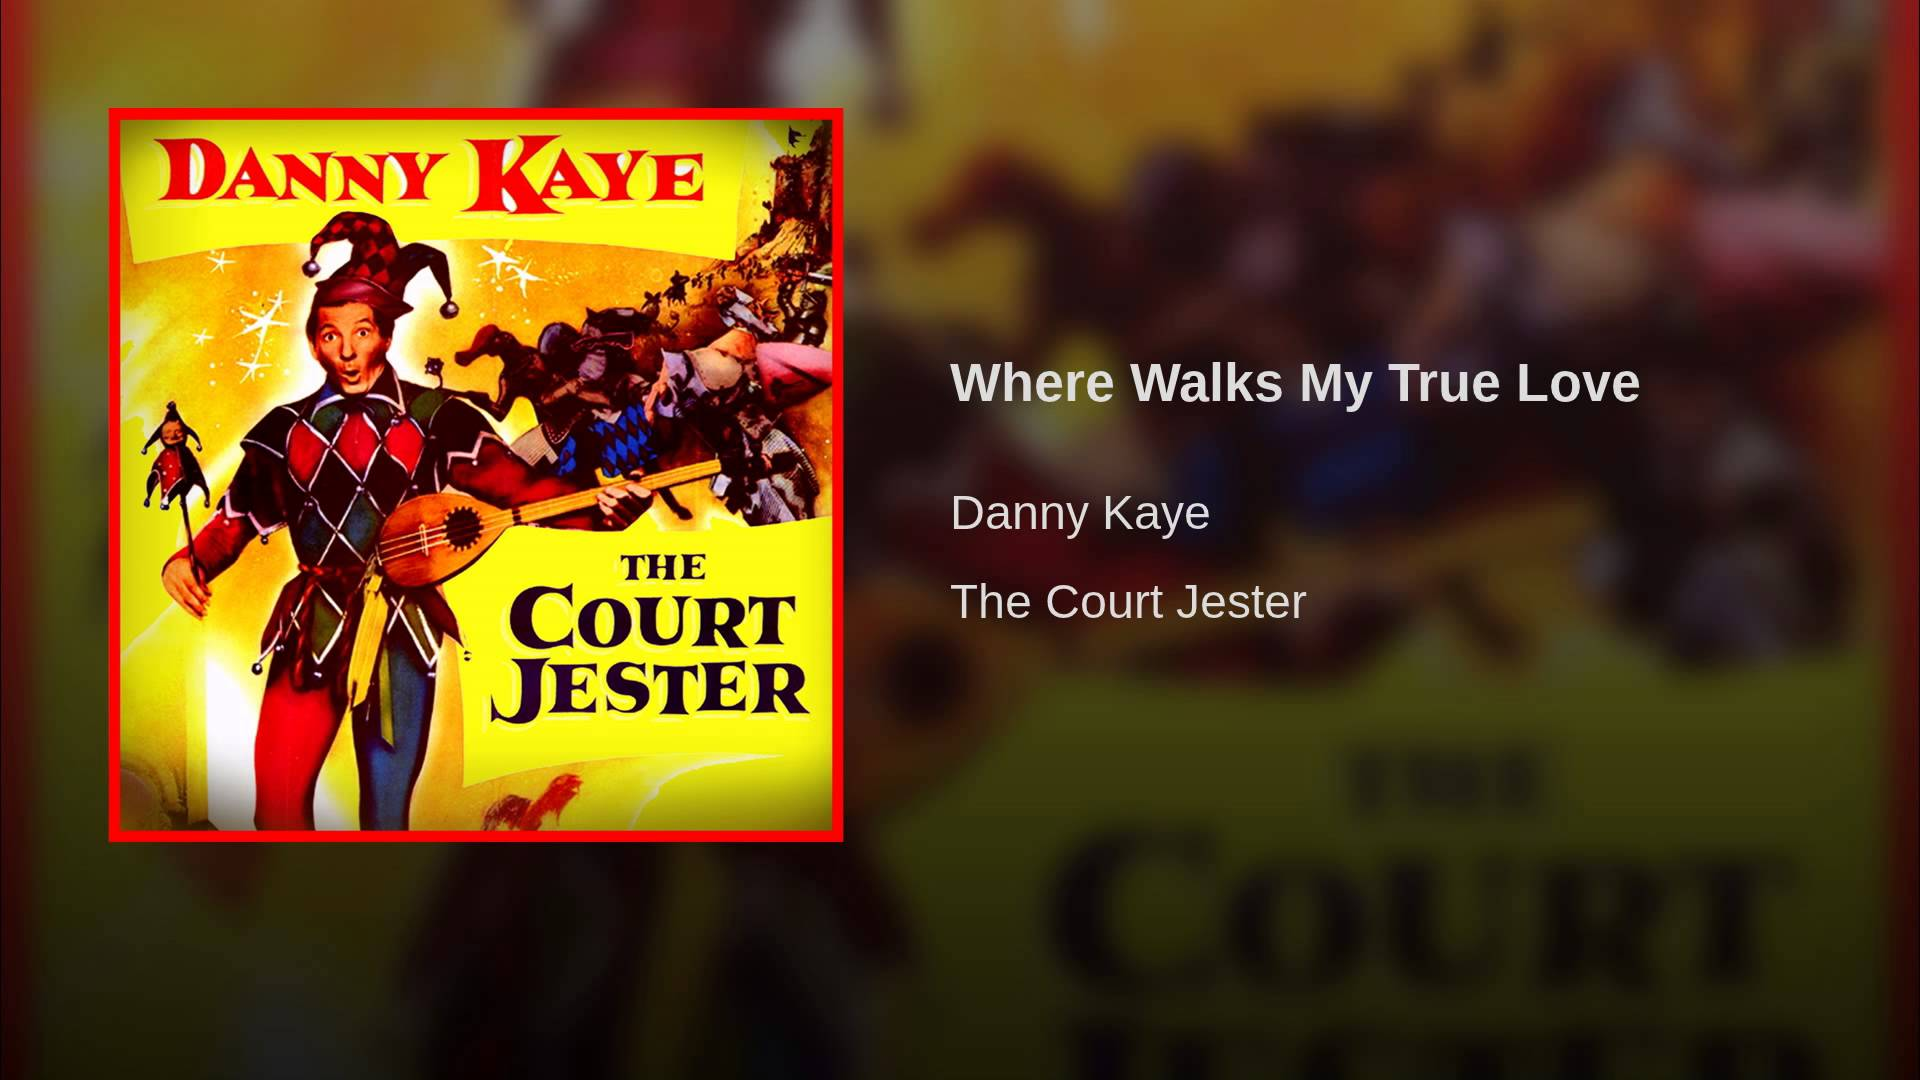 Where Walks My True Love, as recorded by Danny Kaye for The Court Jester